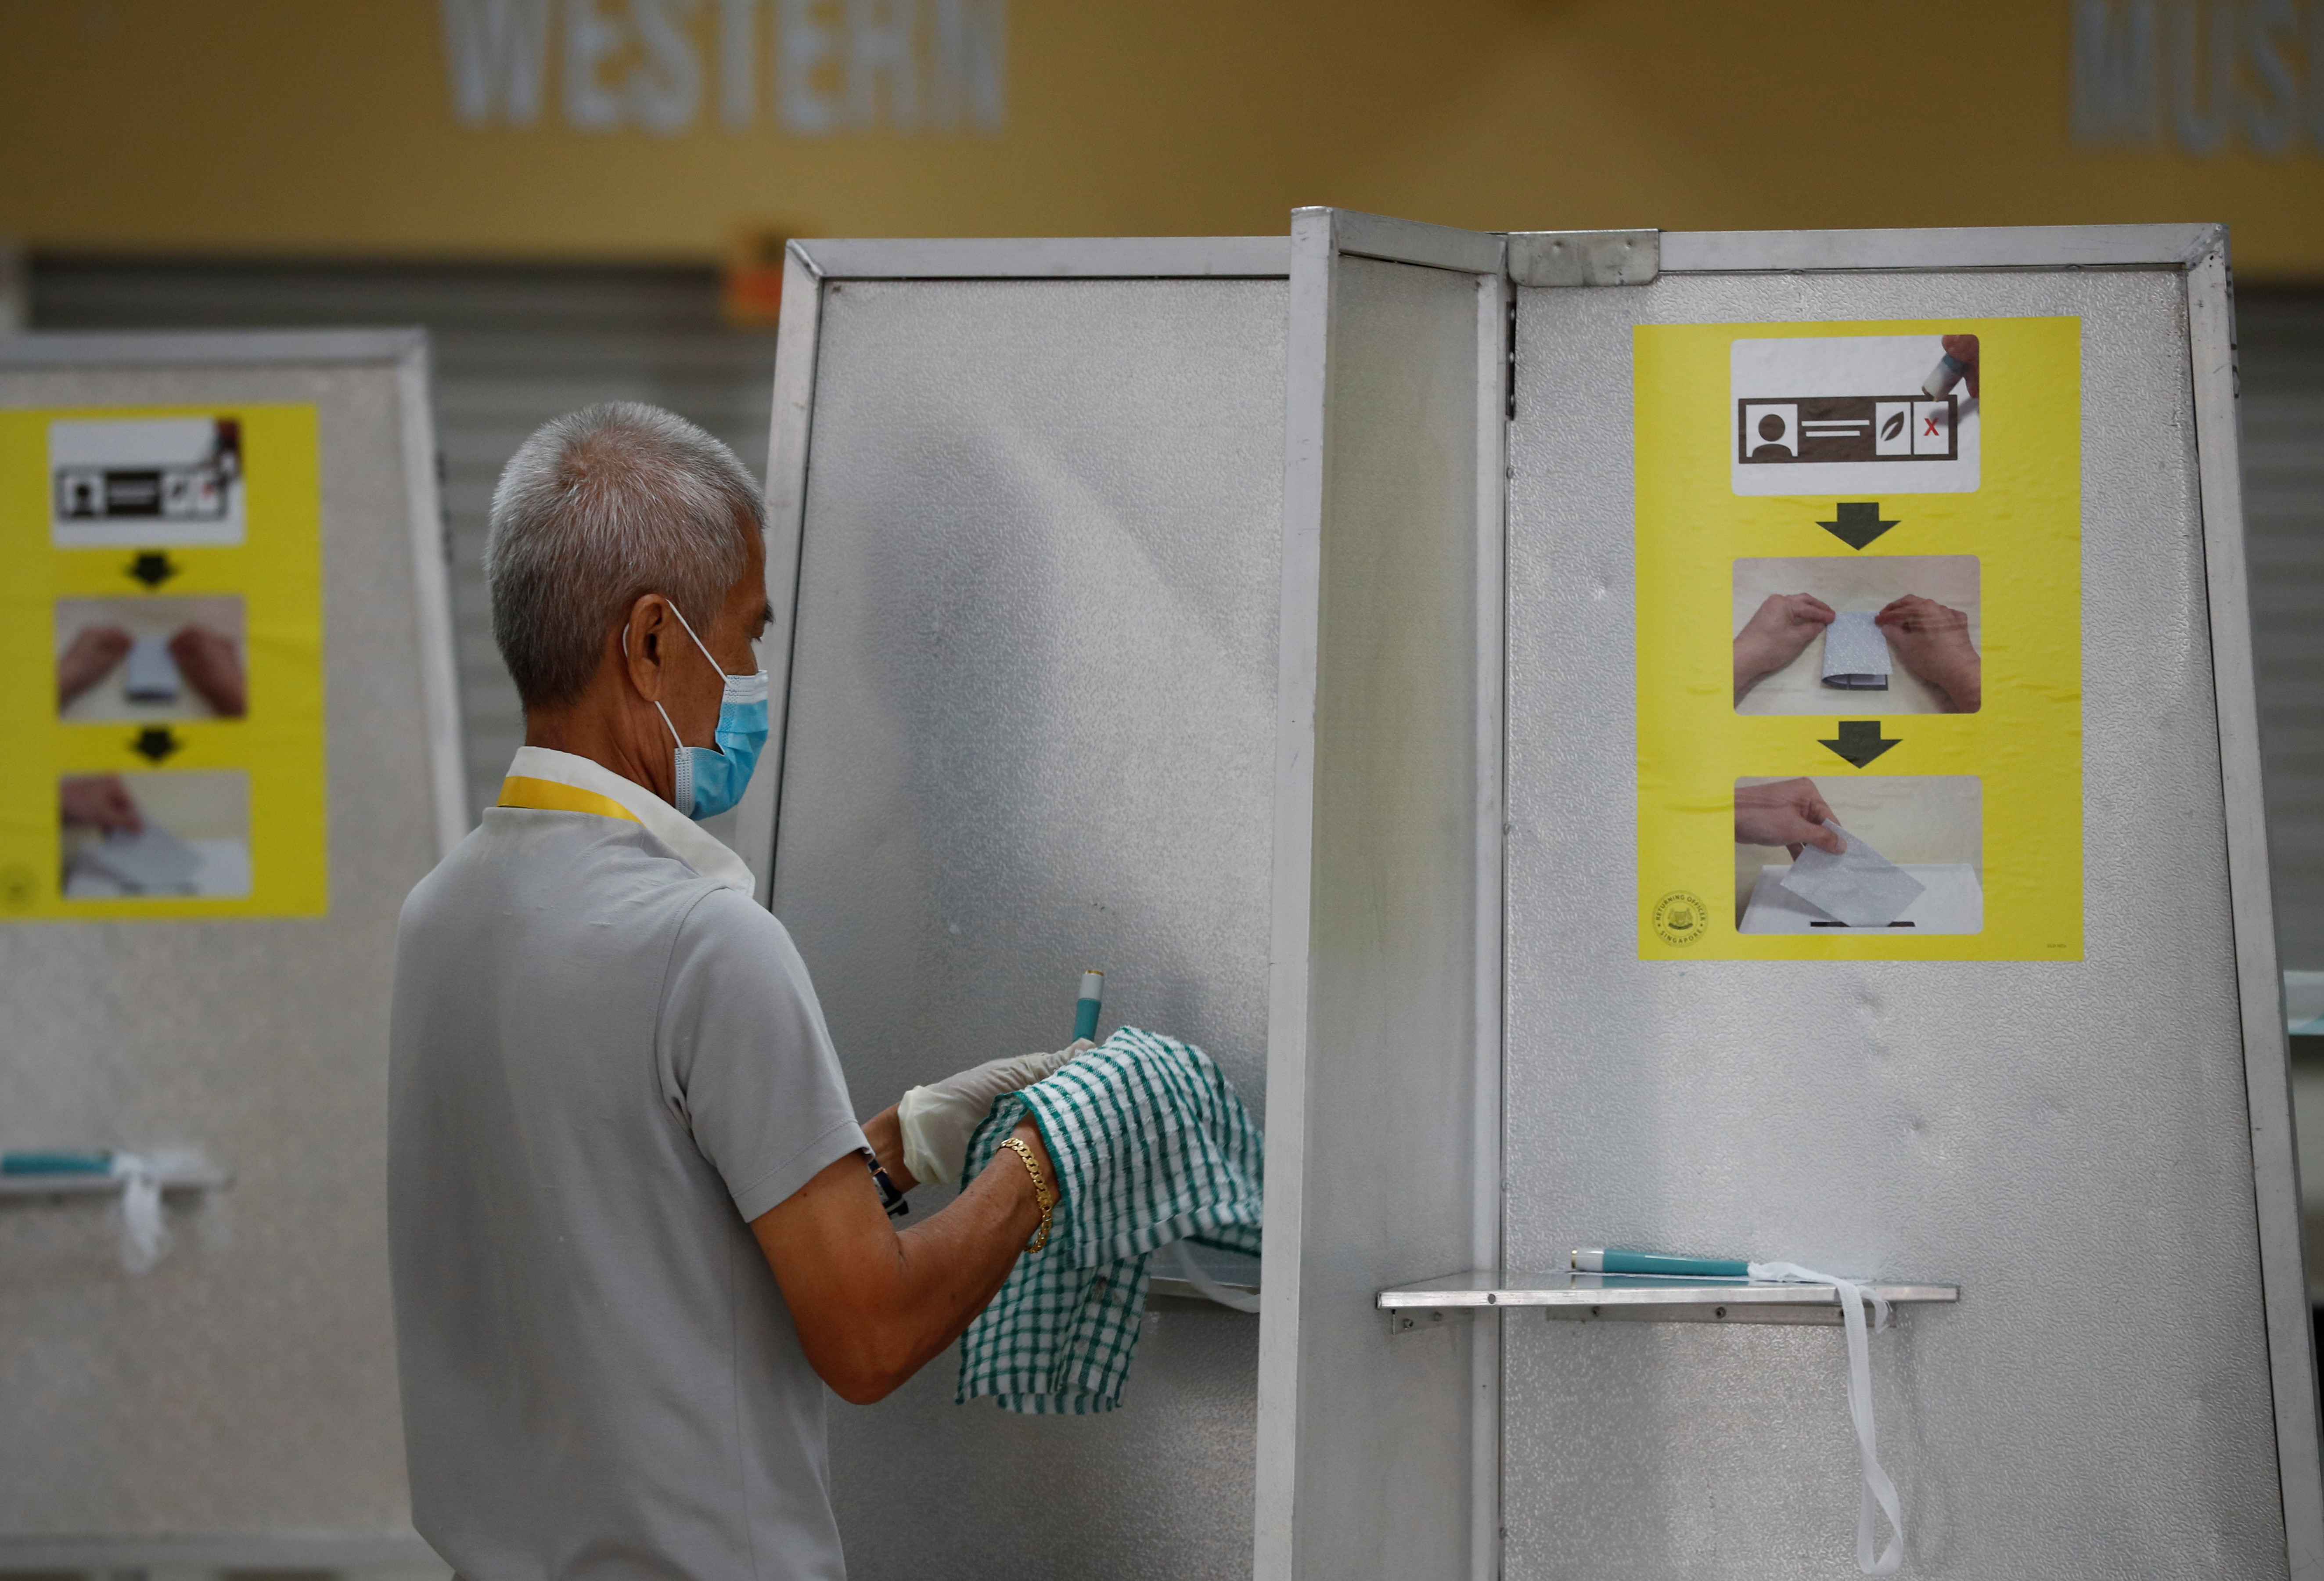 An electoral personnel sanitises self-inking pens at a ballot booth at a polling station during the general election amid the coronavirus disease (COVID-19) outbreak in Singapore July 10, 2020.  REUTERS/Edgar Su - RC22QH9MX50Z